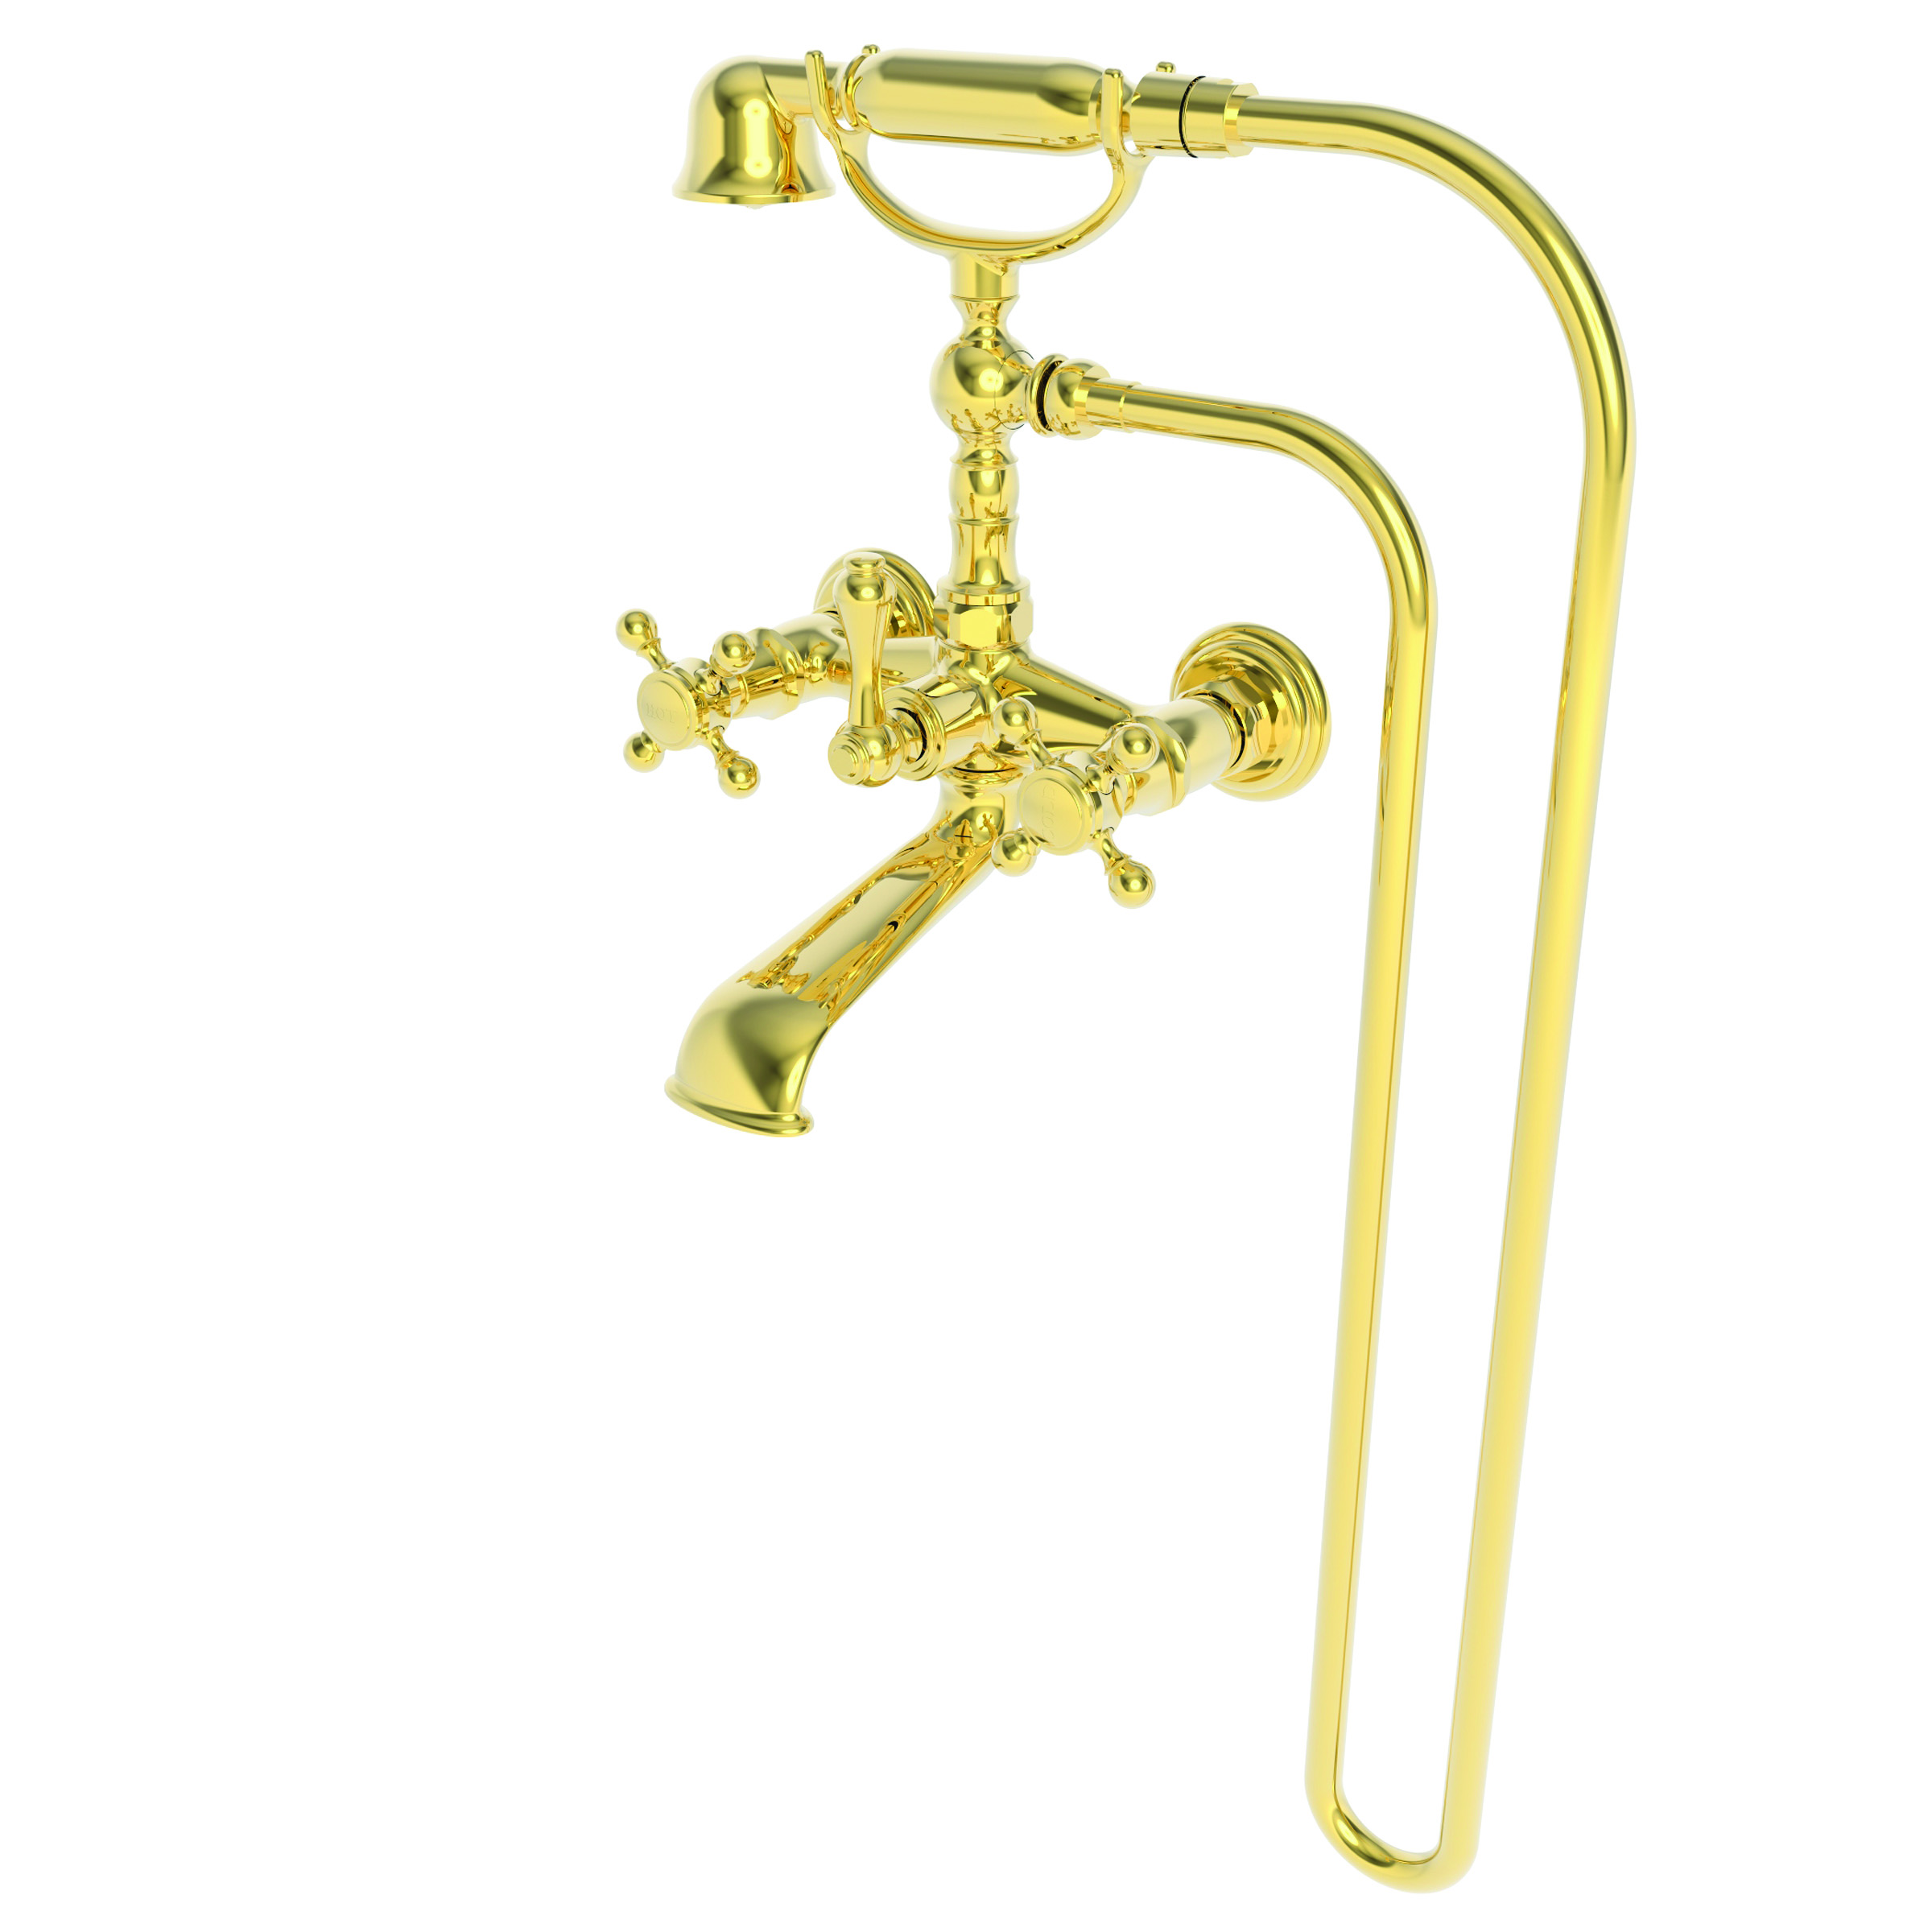 Newport Brass Faucets Newport Brass Bathroom Accessories Newport Center Set Lavatory Faucet